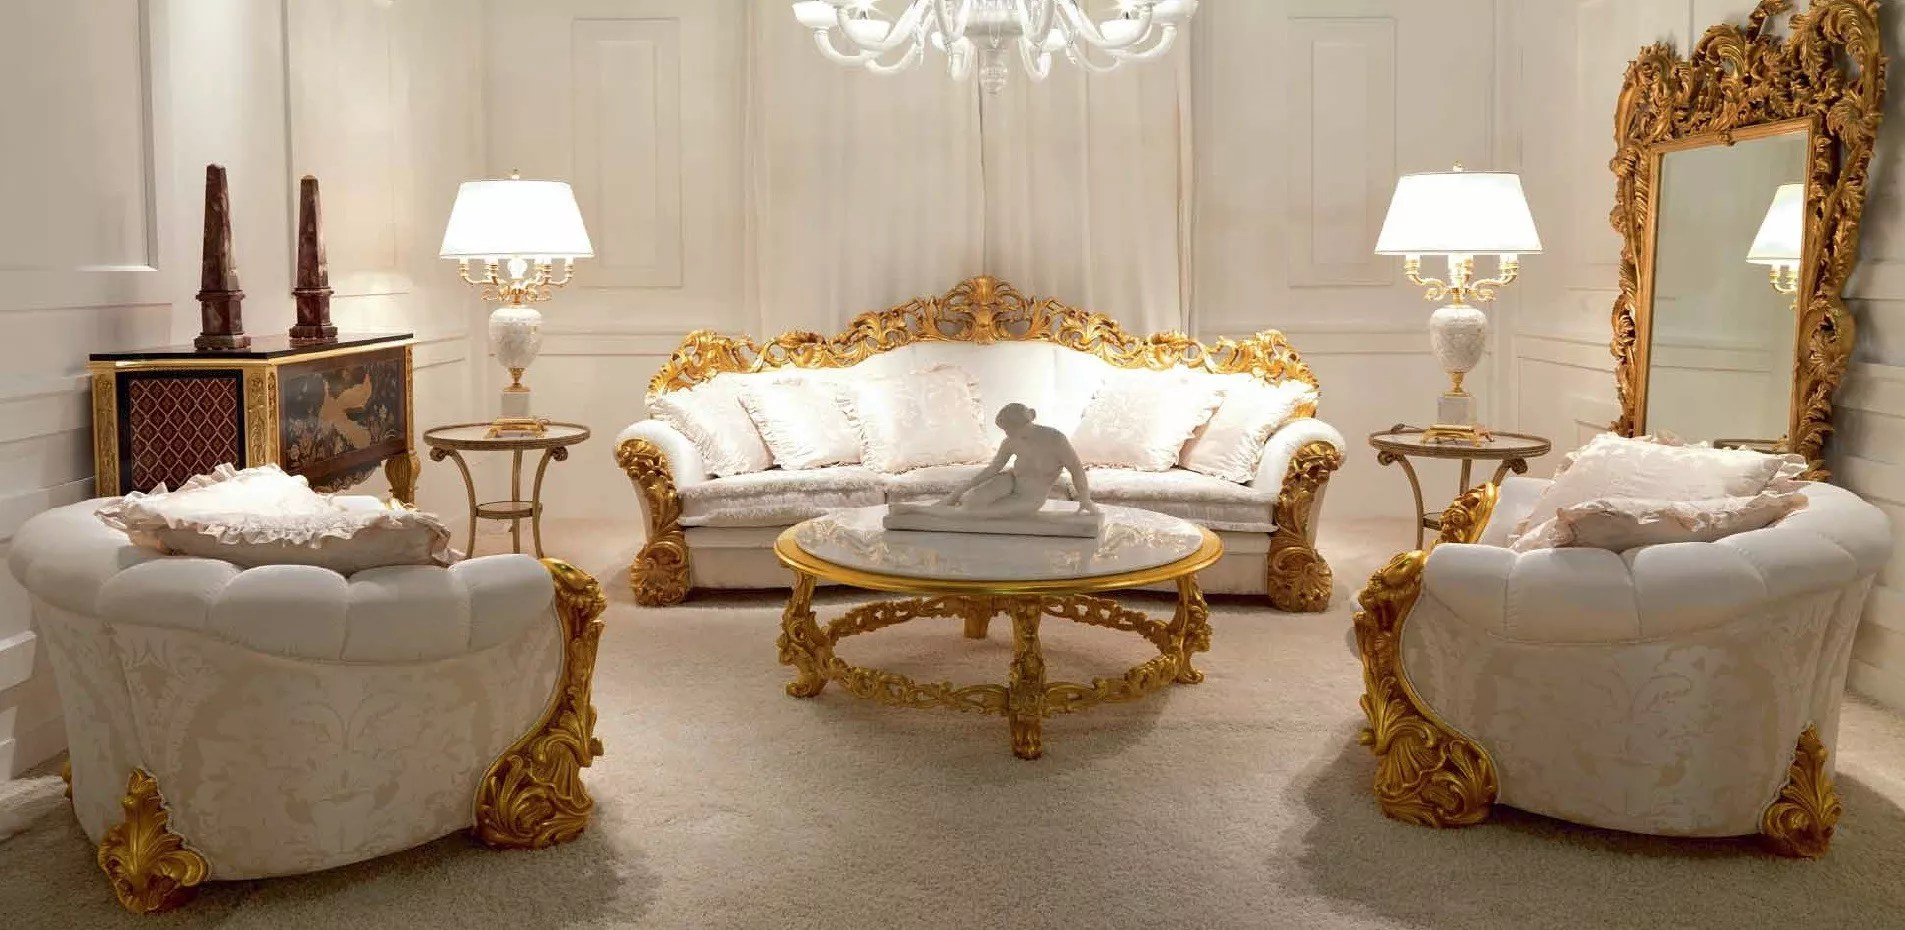 High End Golden and Ruffled Angelic Living Room Furniture Set